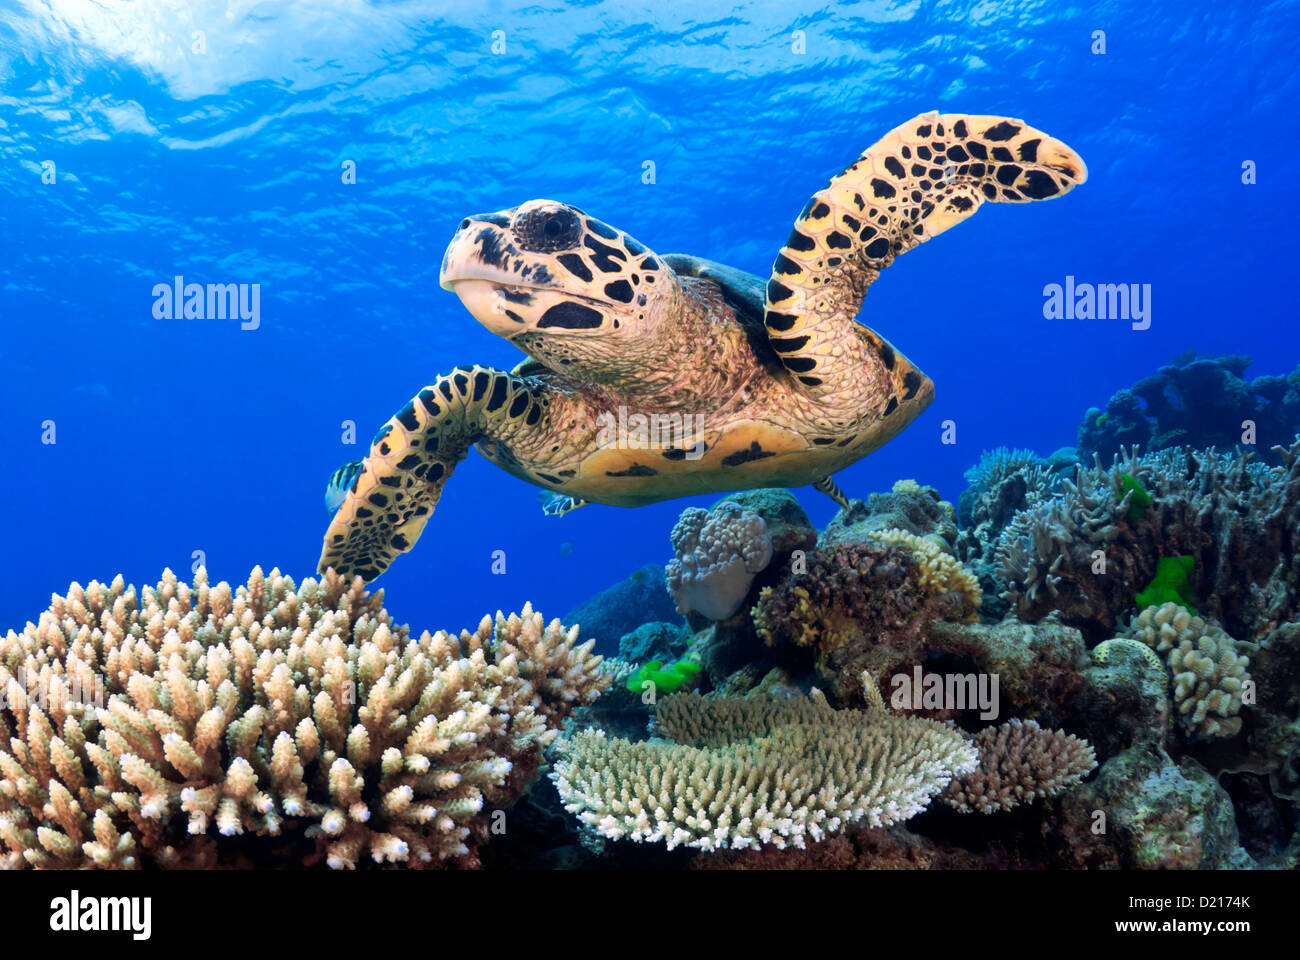 Hawksbill Sea Turtle Eretmochelys imbricata swimming over a Coral Reef, Great Barrier Reef, Coral Sea, Queensland, Stock Photo